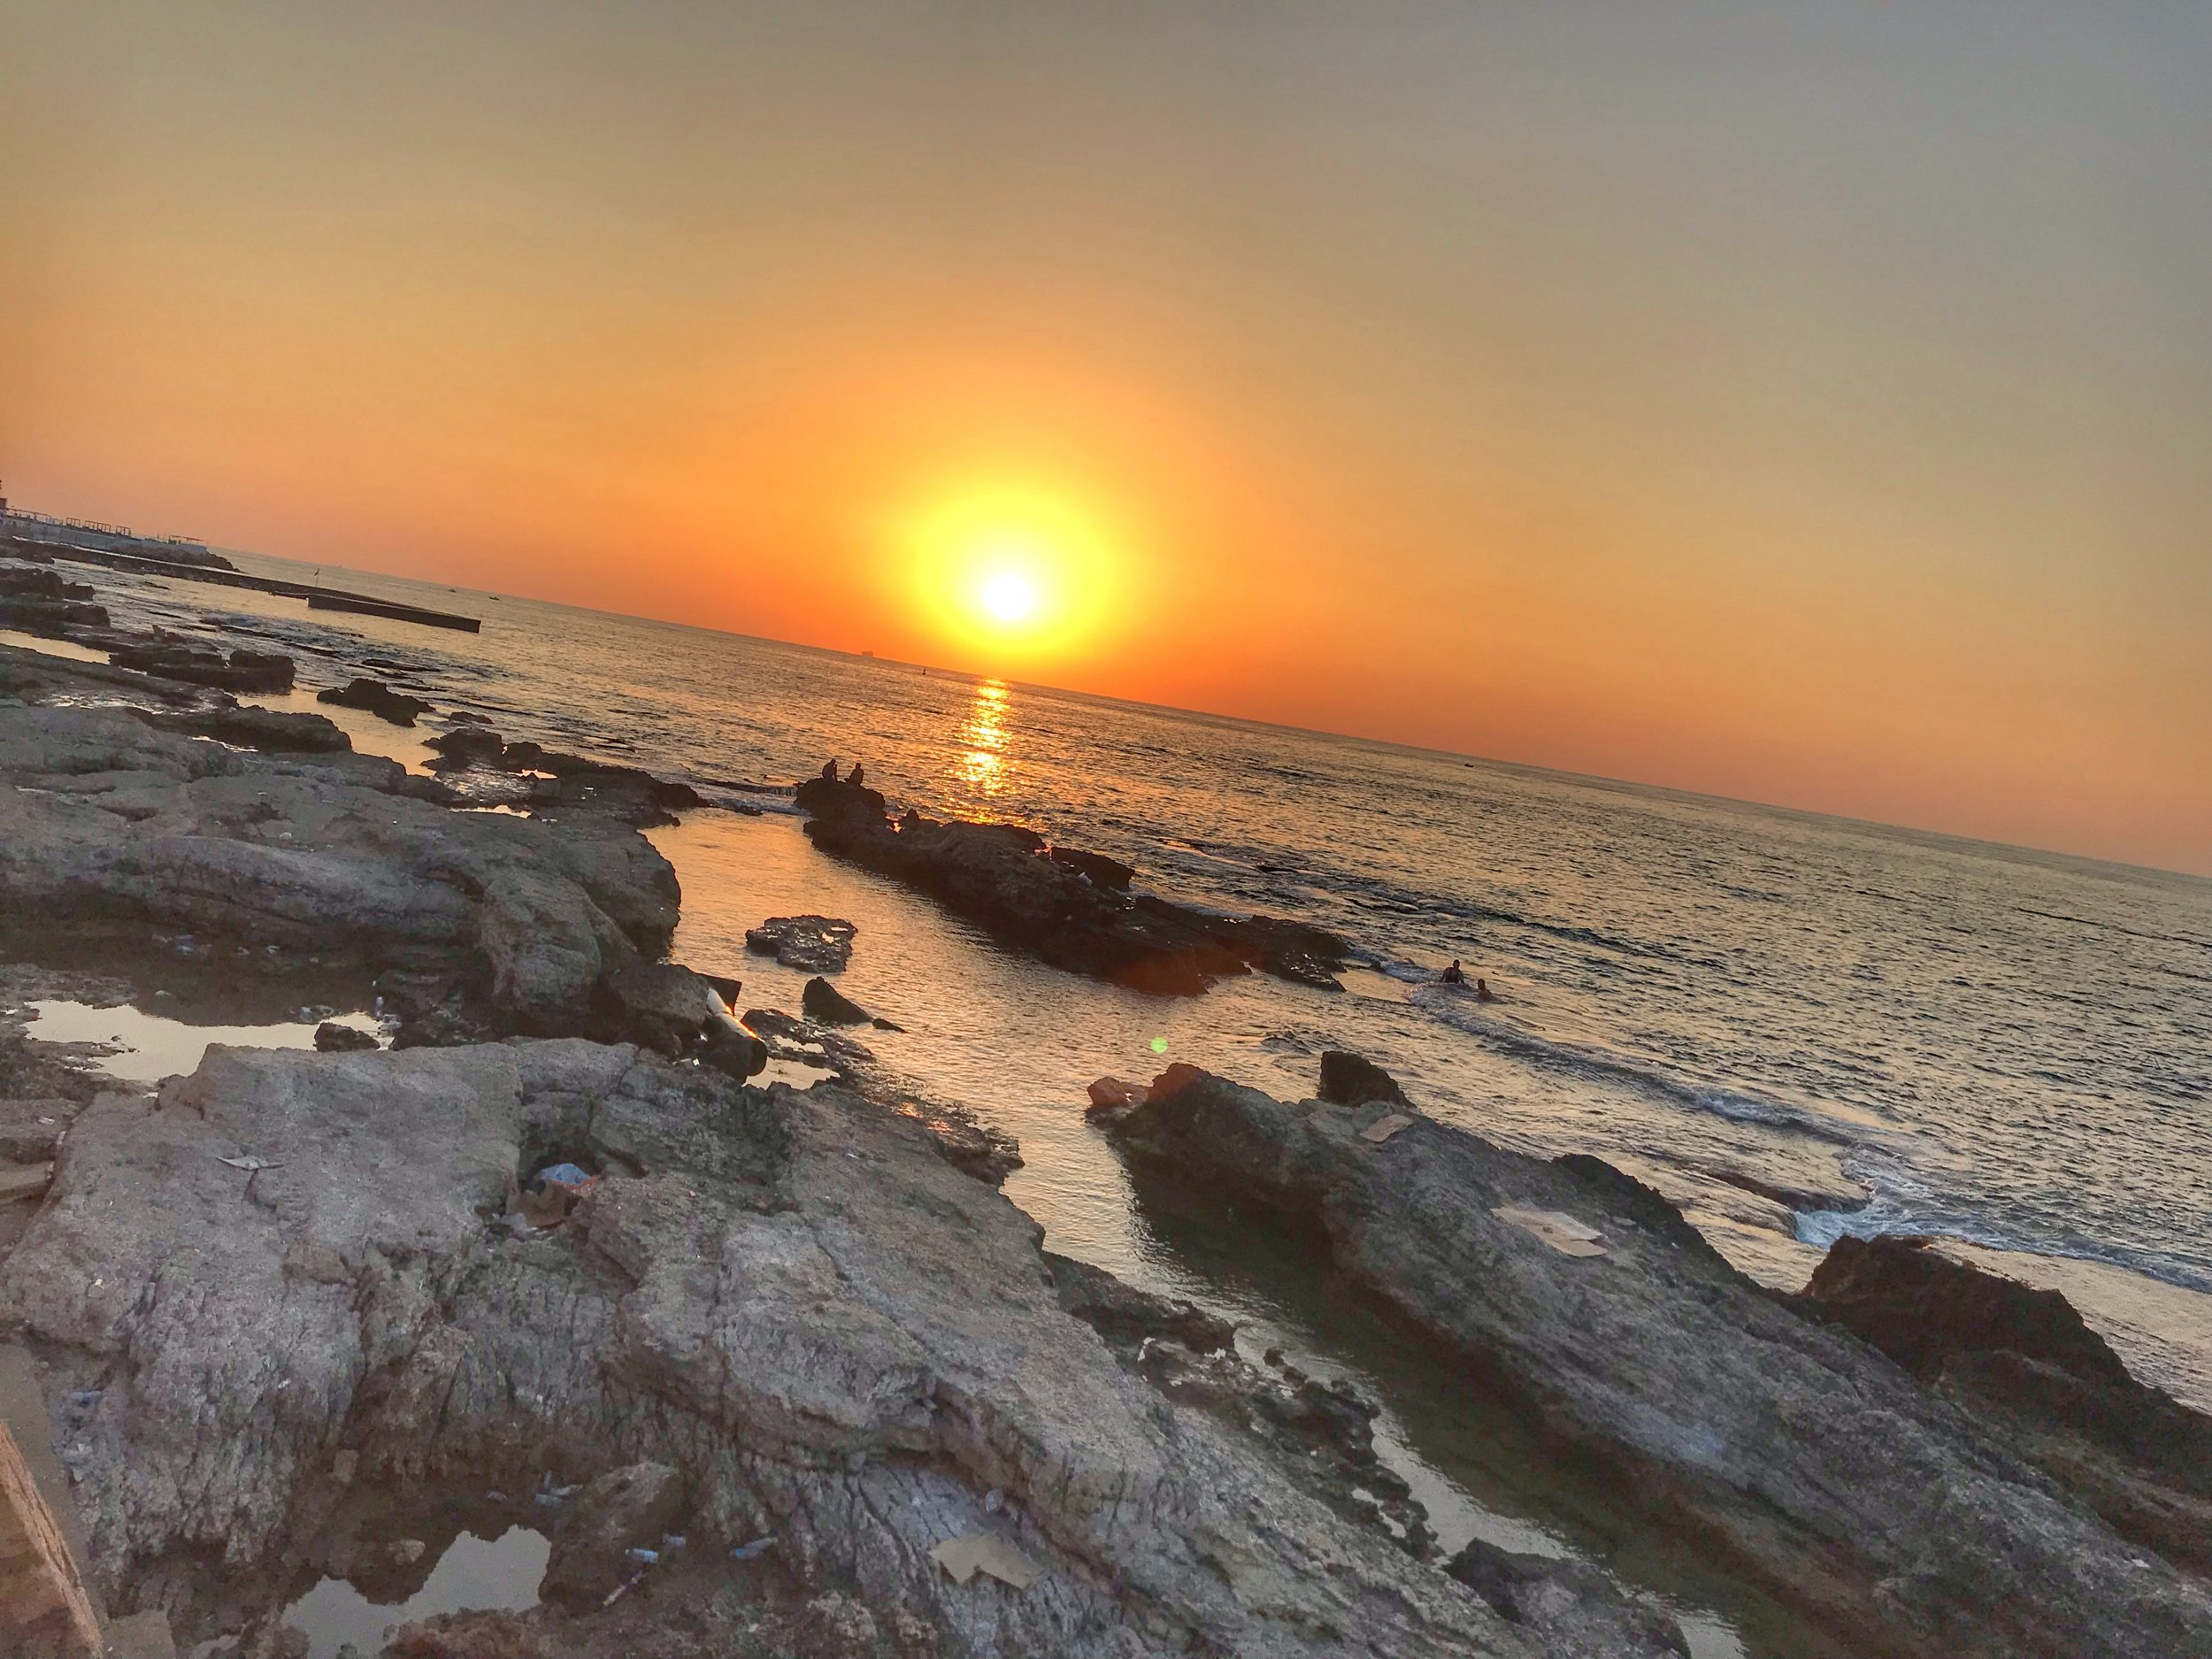 Sunset from the Corniche over the Mediterranean Sea. My favorite. Beirut, Lebanon. August 7, 2019.